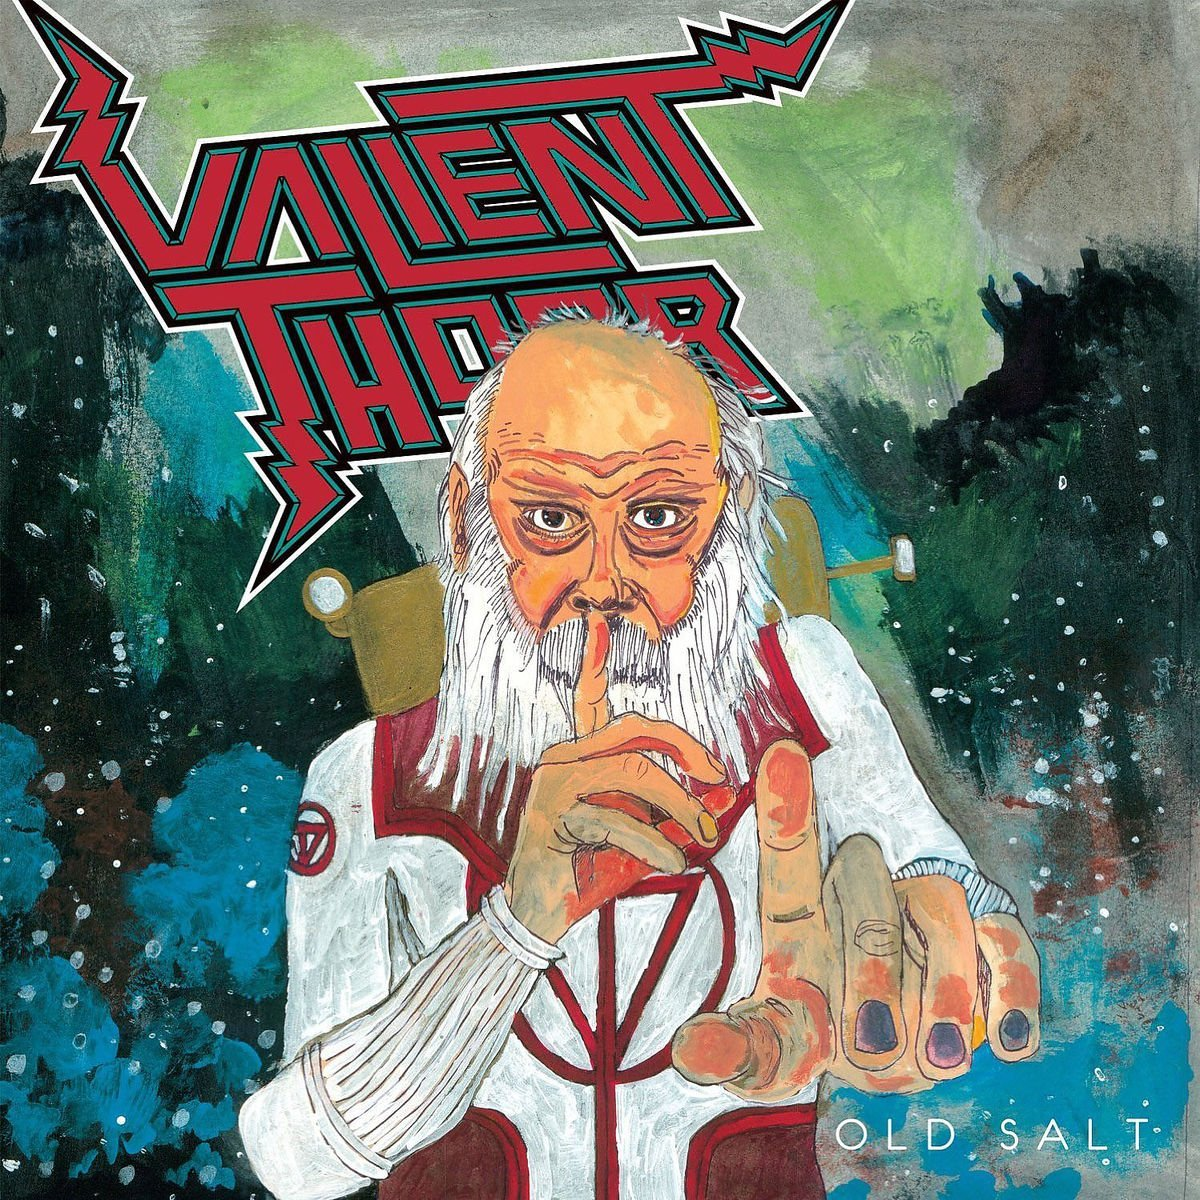 Valient Thorr - Old Salt